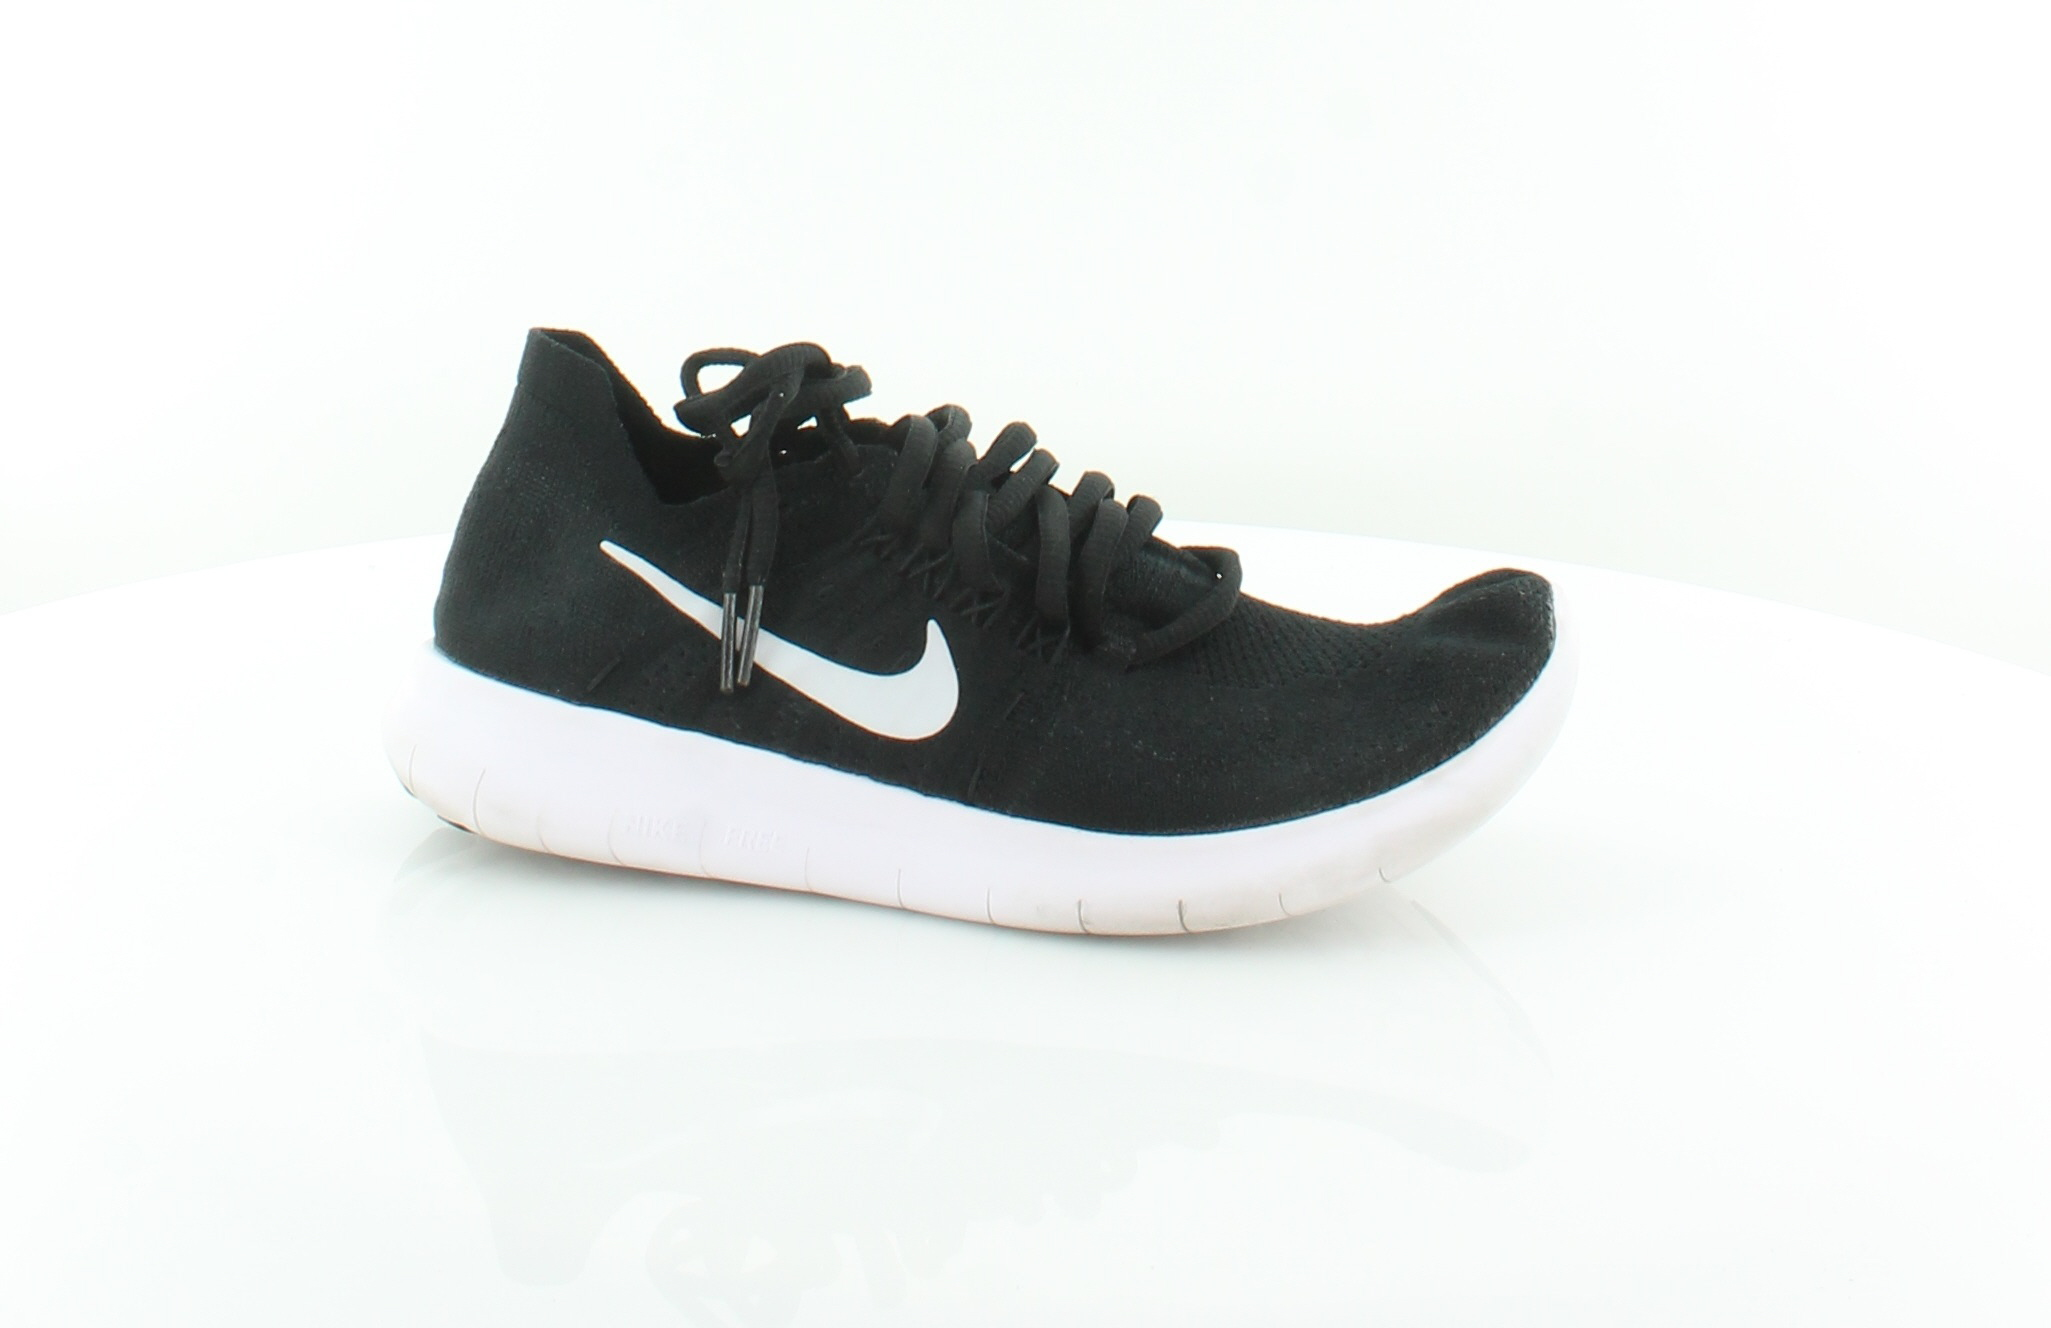 d2dc12c09854 Nike Free Run Black Womens Shoes Size 7 M Athletic MSRP  120